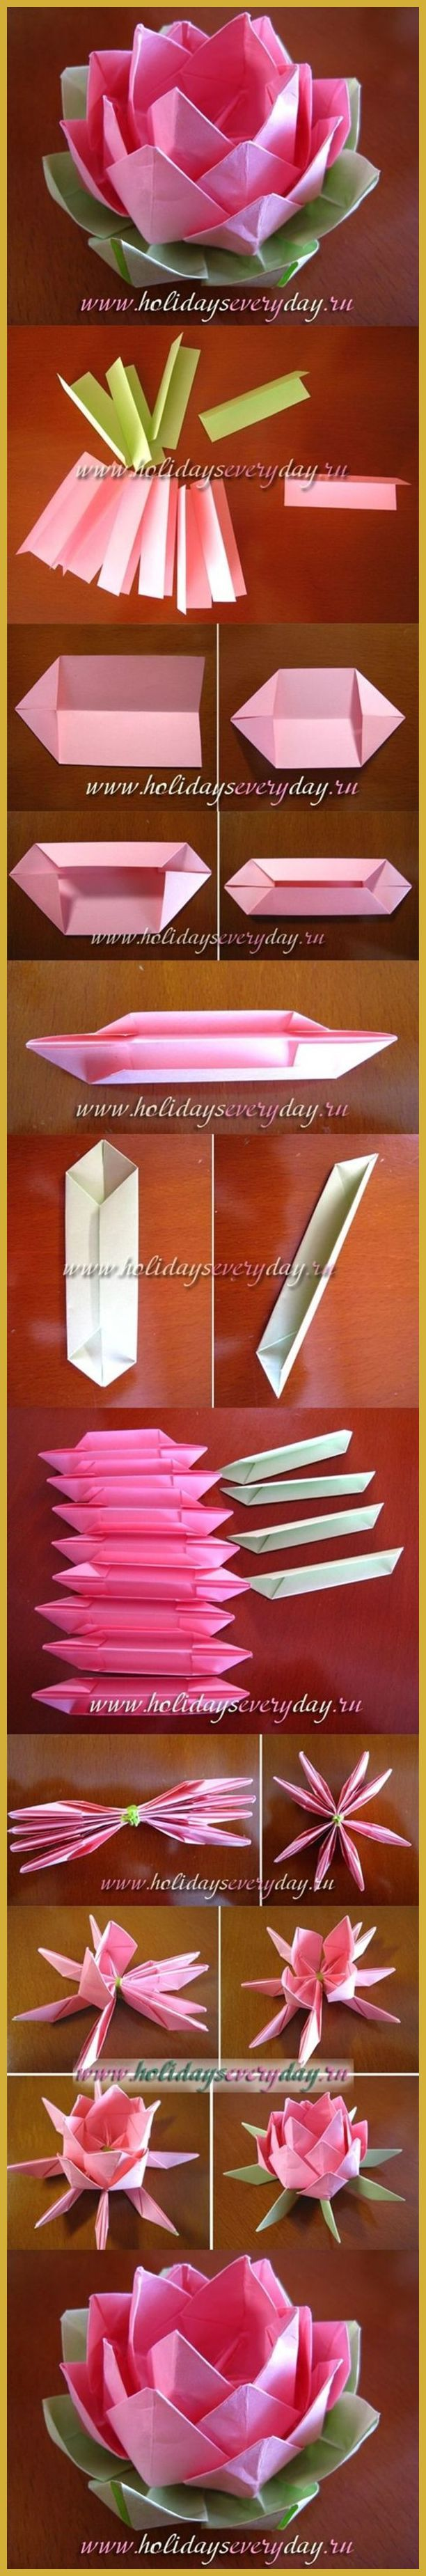 [Origami] How to Beat the Winter Blues by Creating Wonderful Items With Origami ** Read more at the image link. #OrigamiPaper